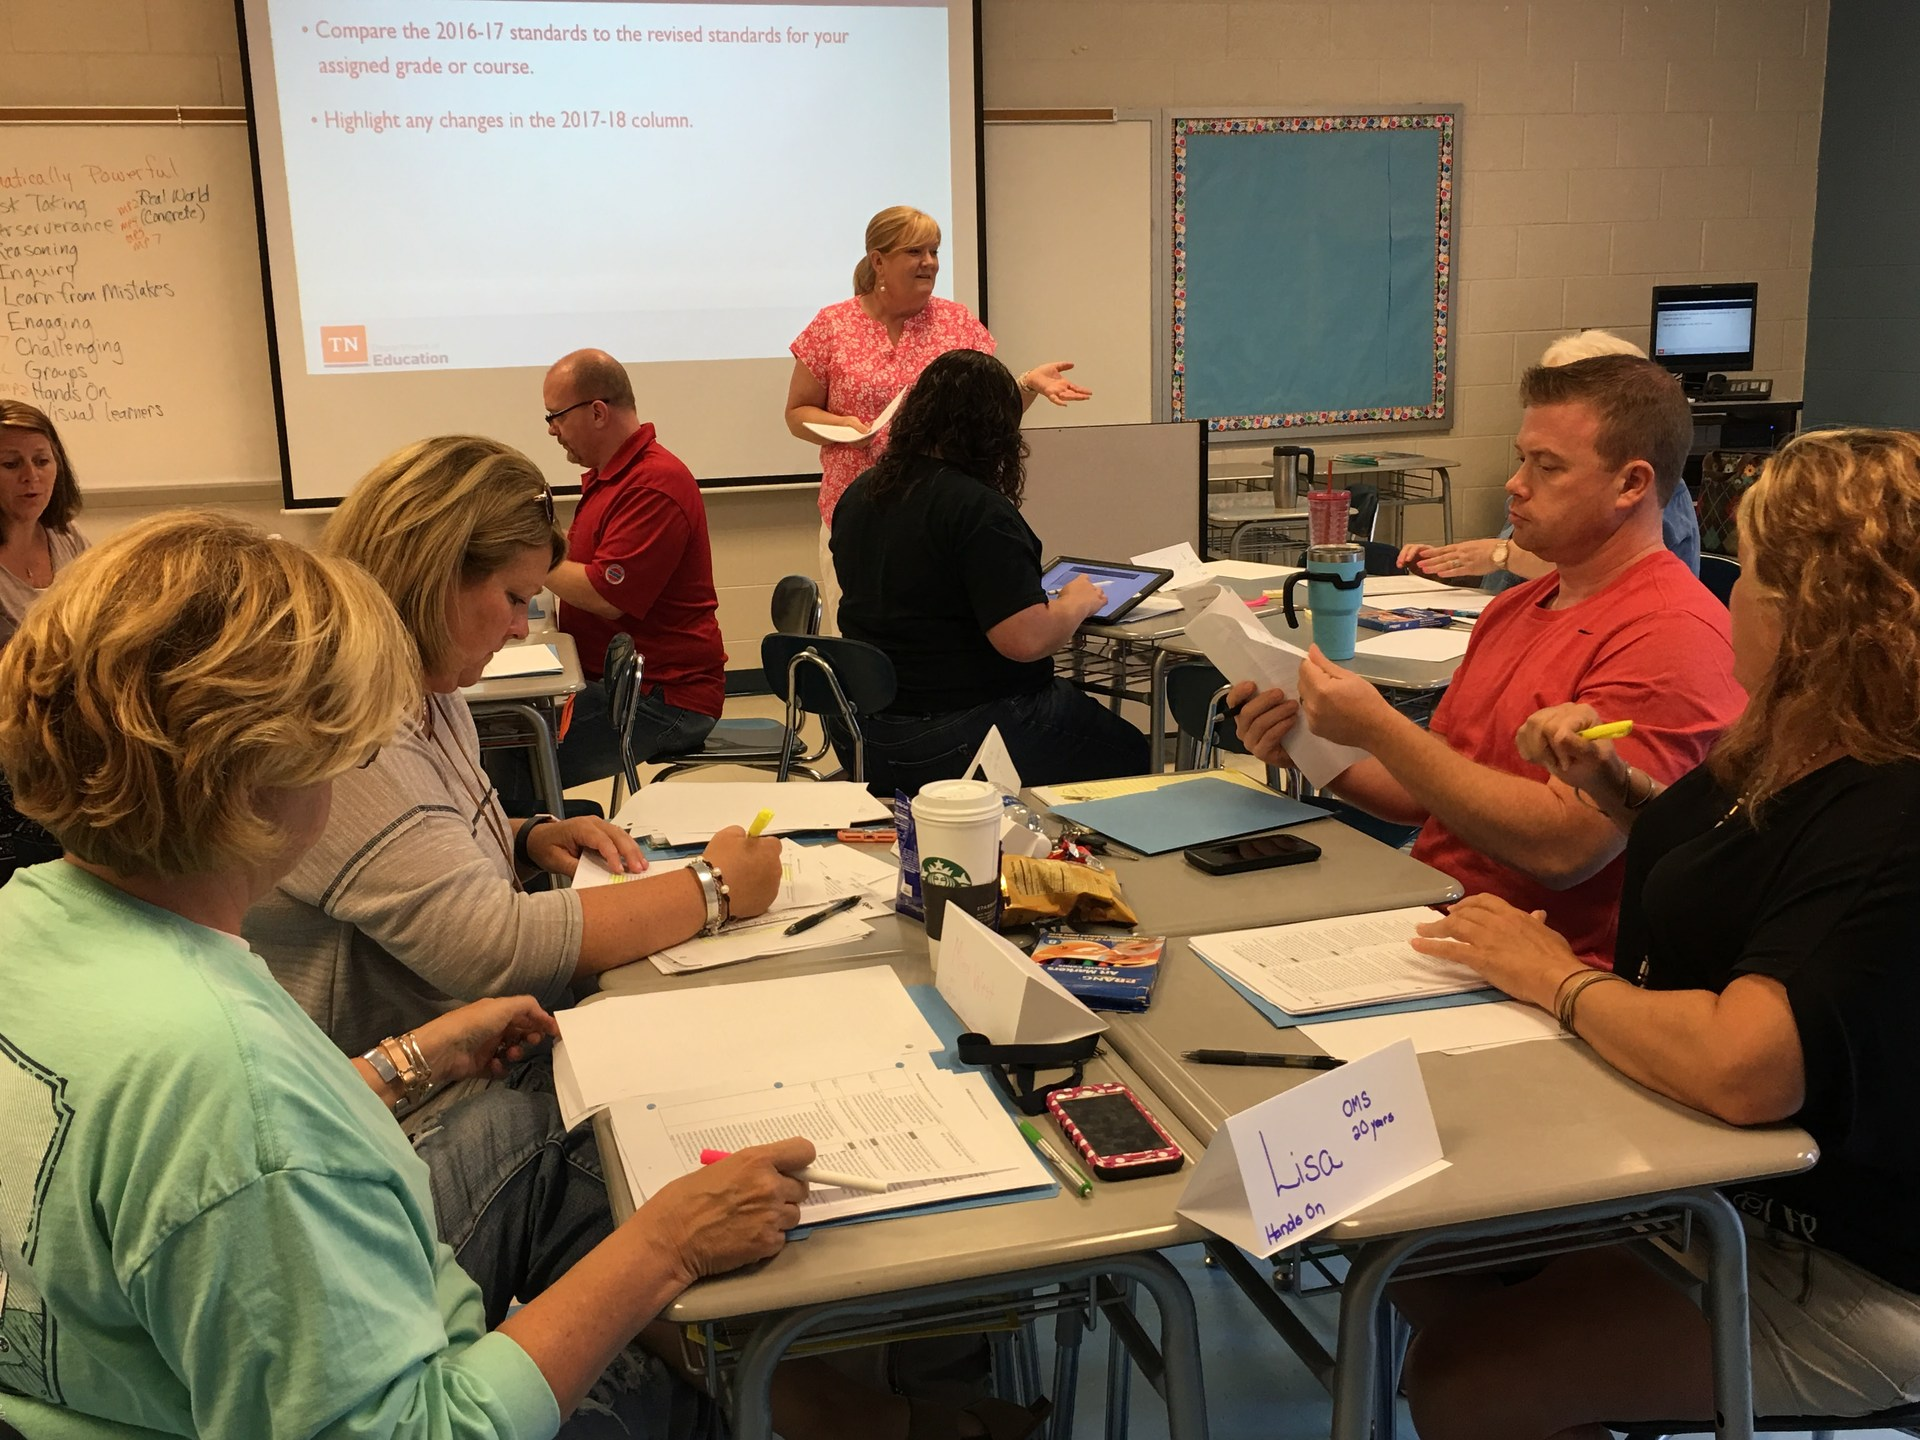 Collaborating with math teachers